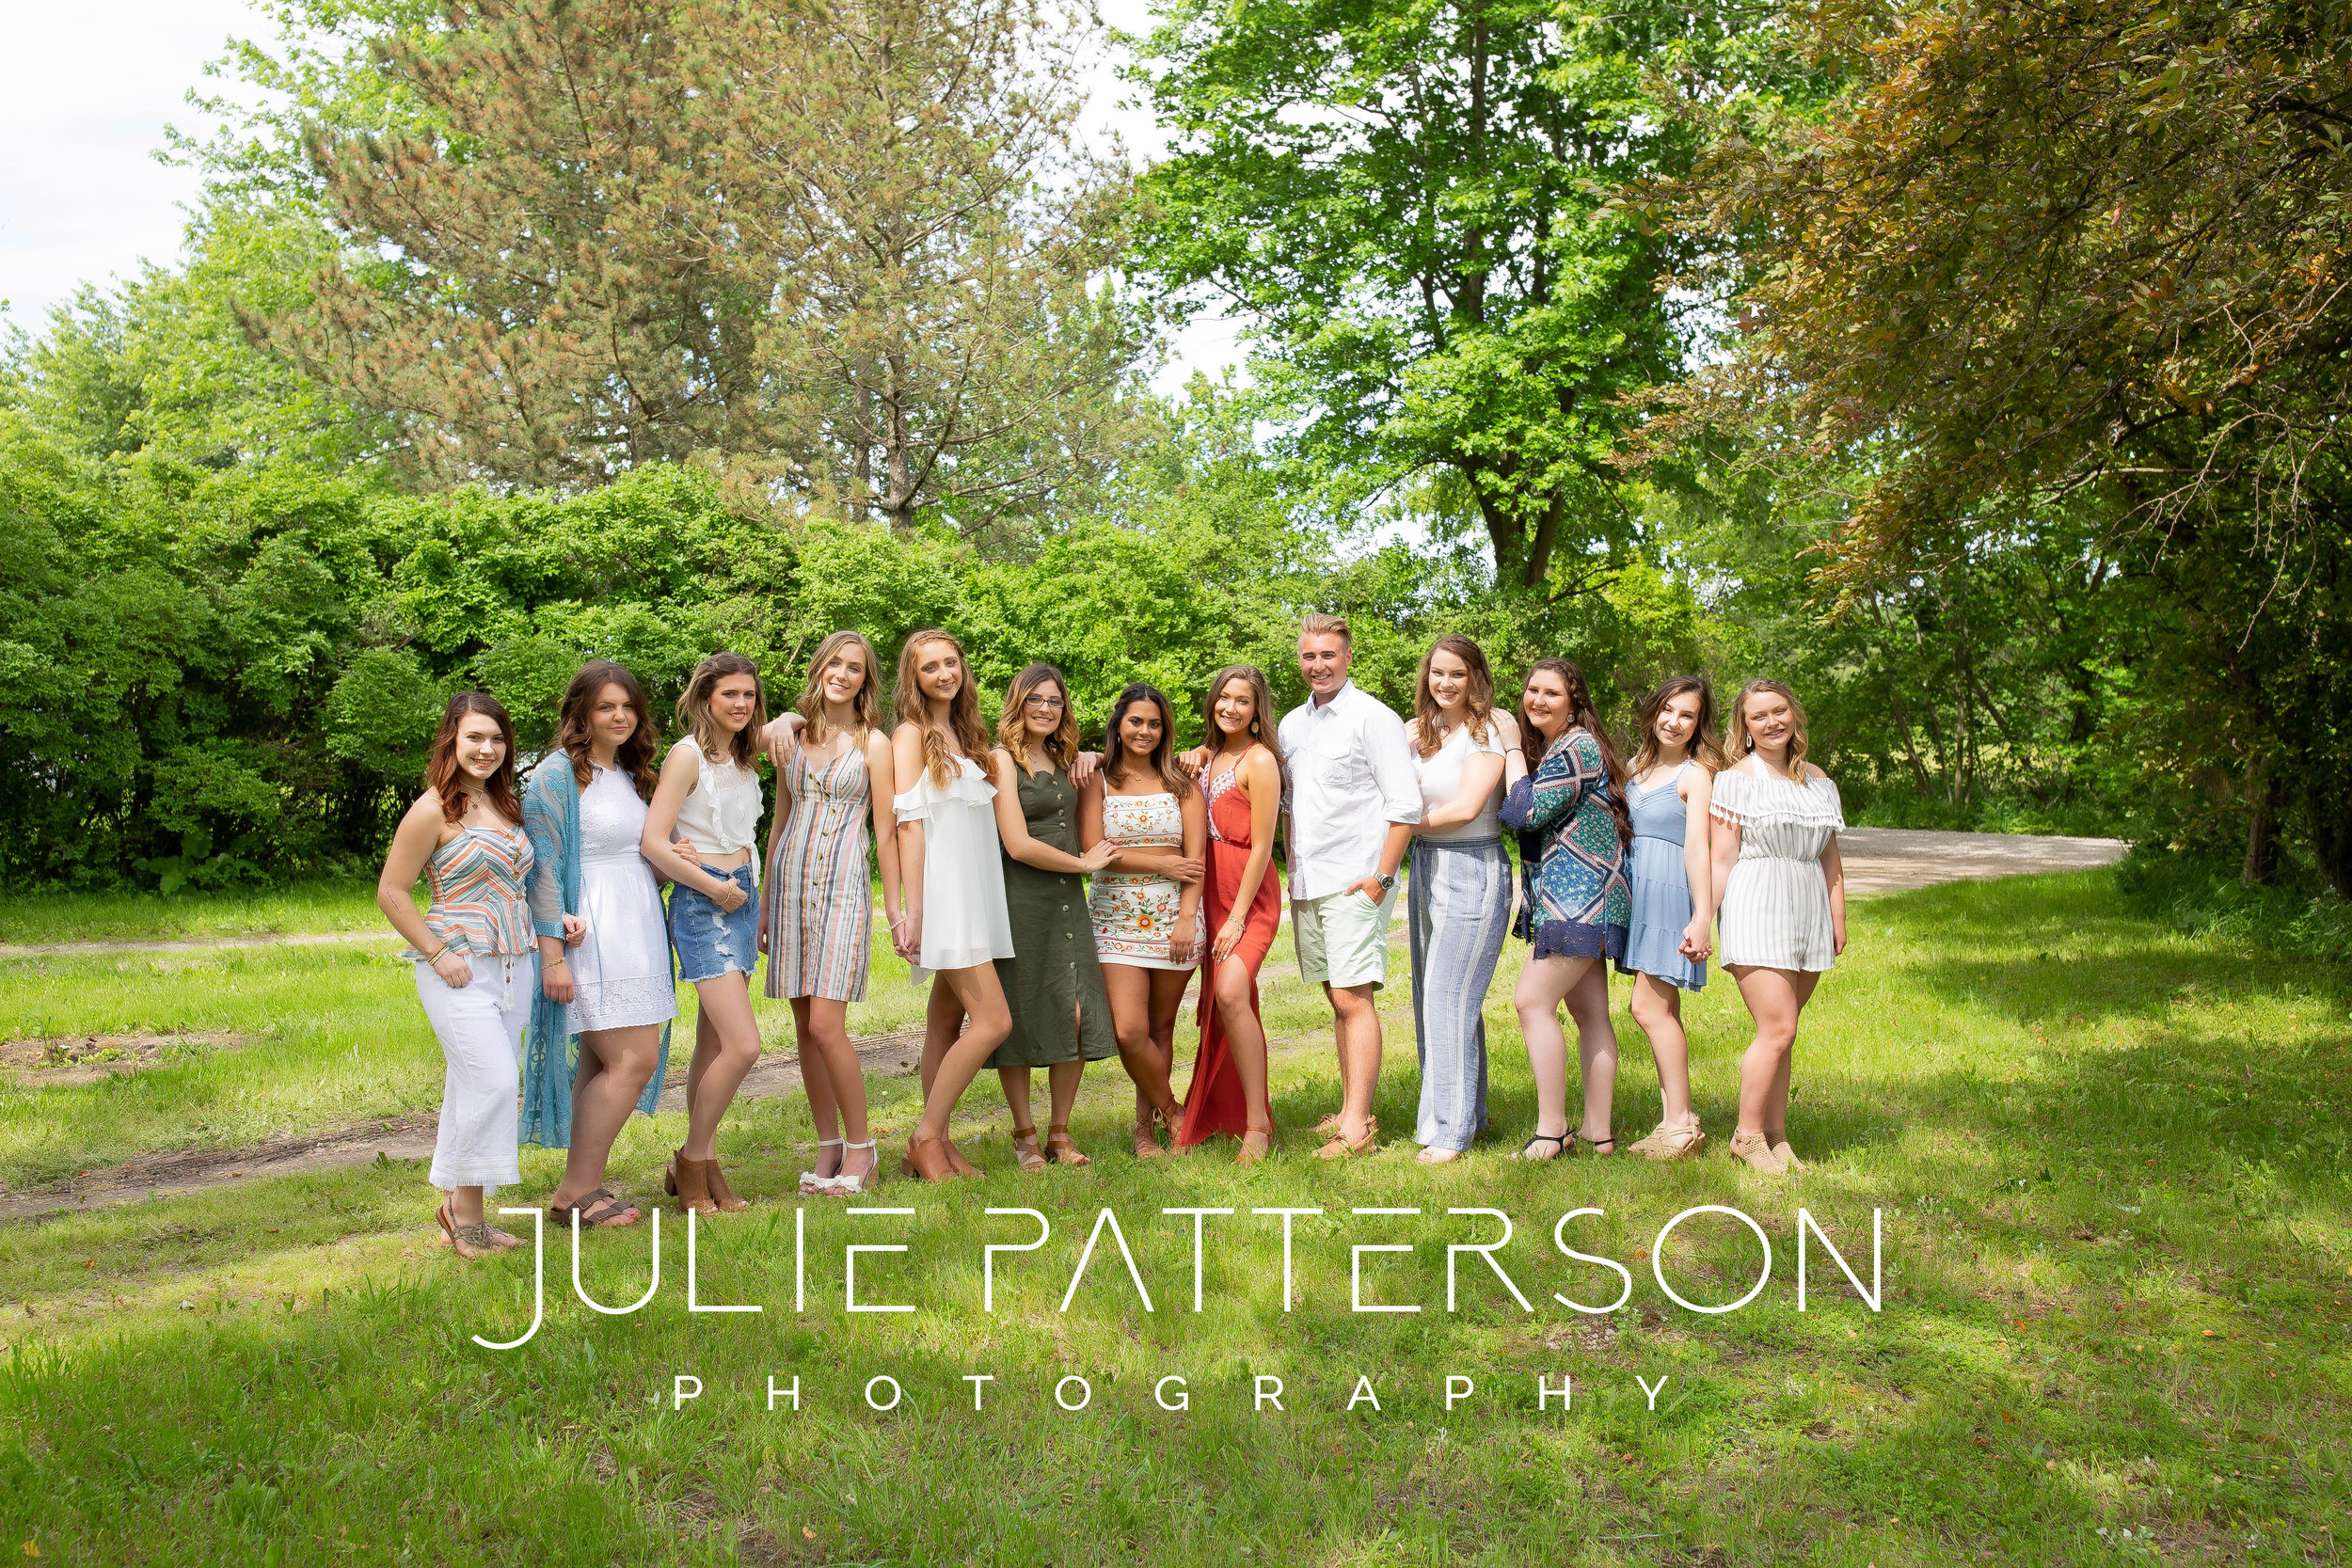 Julie Patterson Photography mod squad tropical boho photoshoot ann arbor michigan Milan plymouth canton plymouth saline top michigan senior photographer